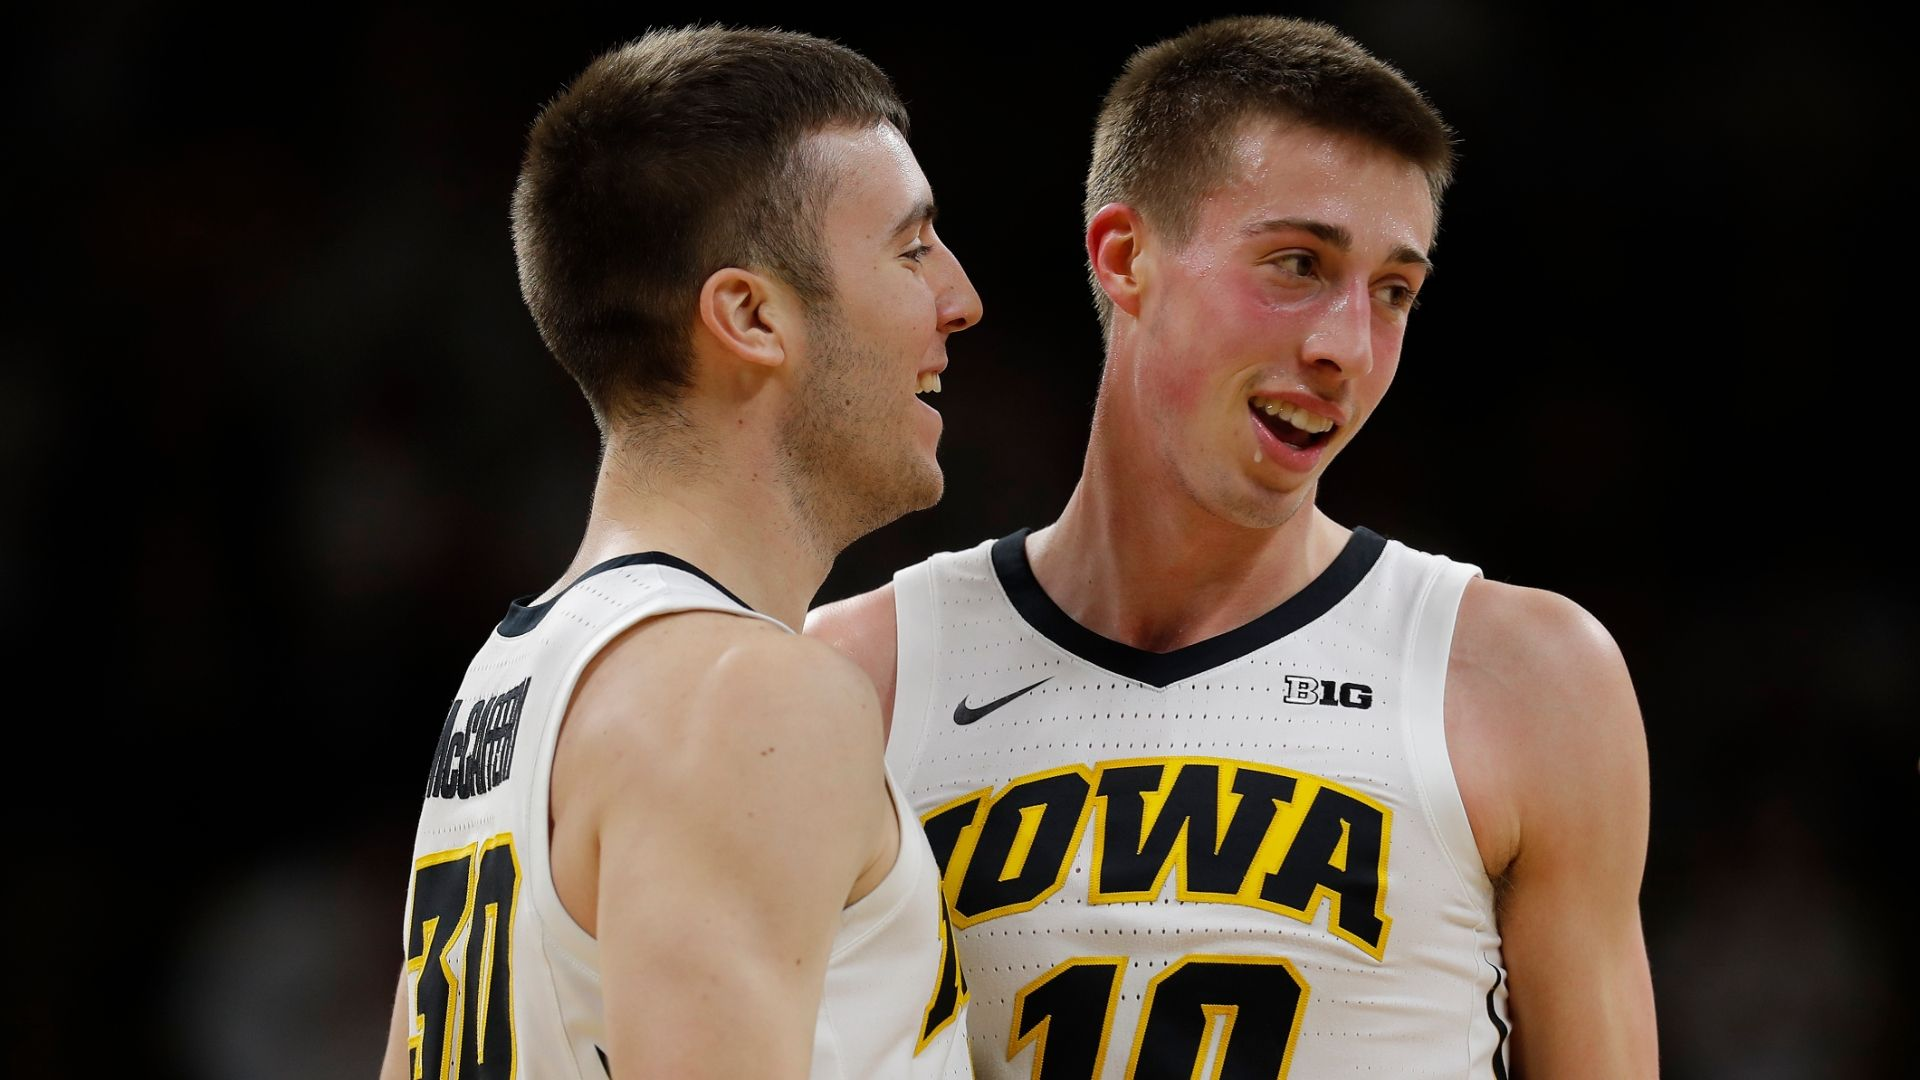 Iowa gets hot from beyond the arc in 2nd half